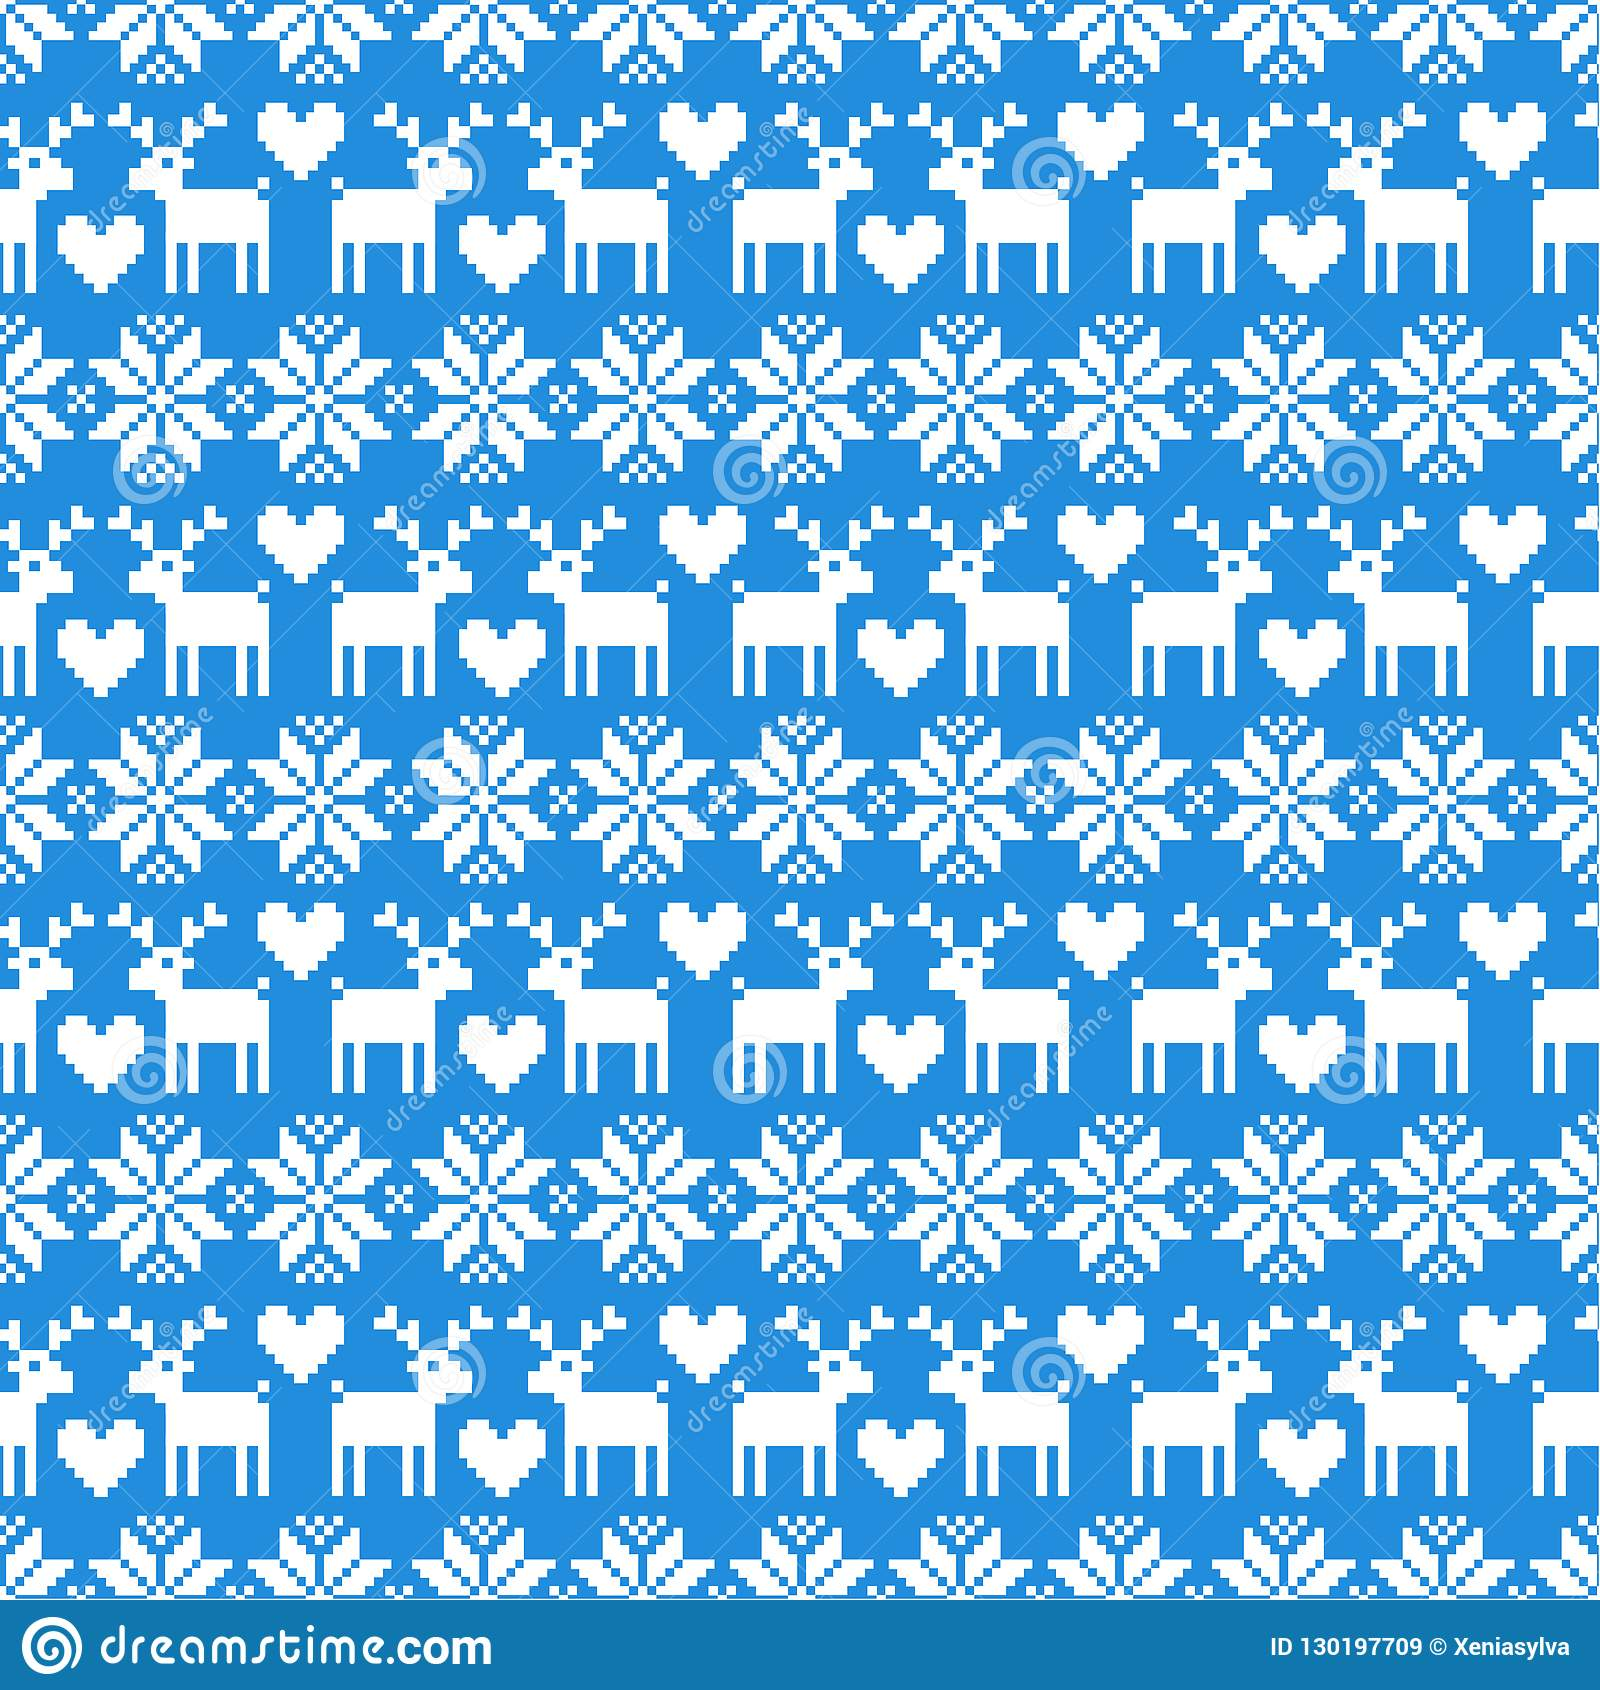 Christmas Sweater Pattern.Vector Seamless Christmas Sweater Pattern With Deers On Blue